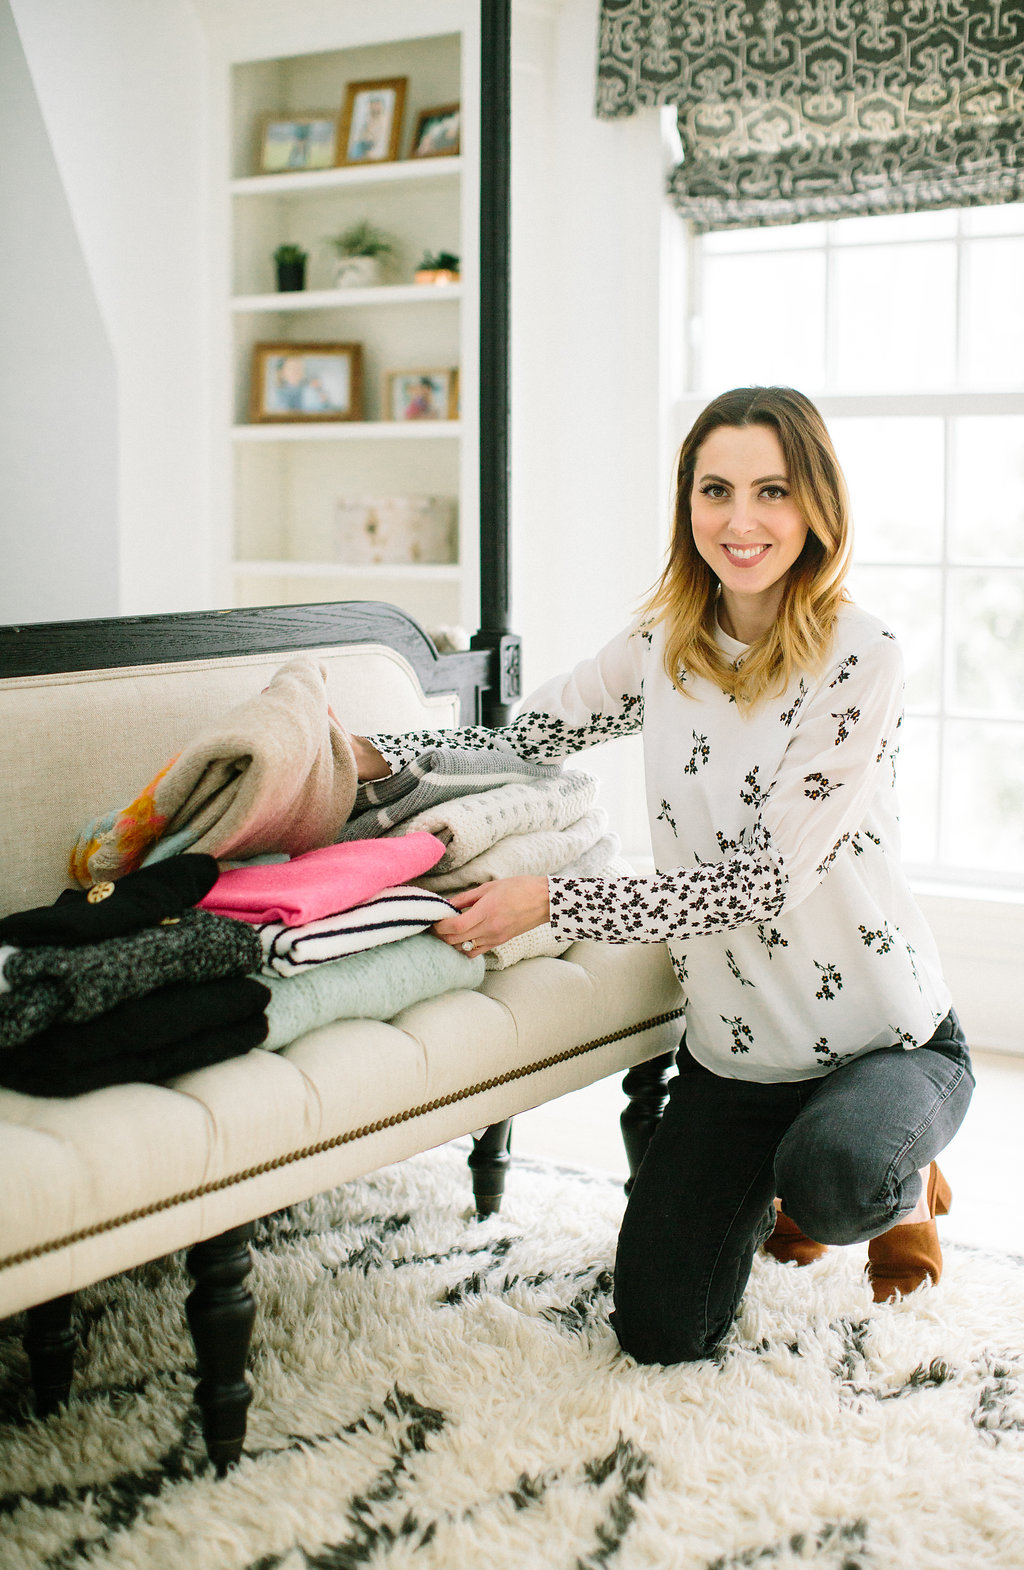 Eva Amurri Martino organizes her sweaters as part of her closet cleanout